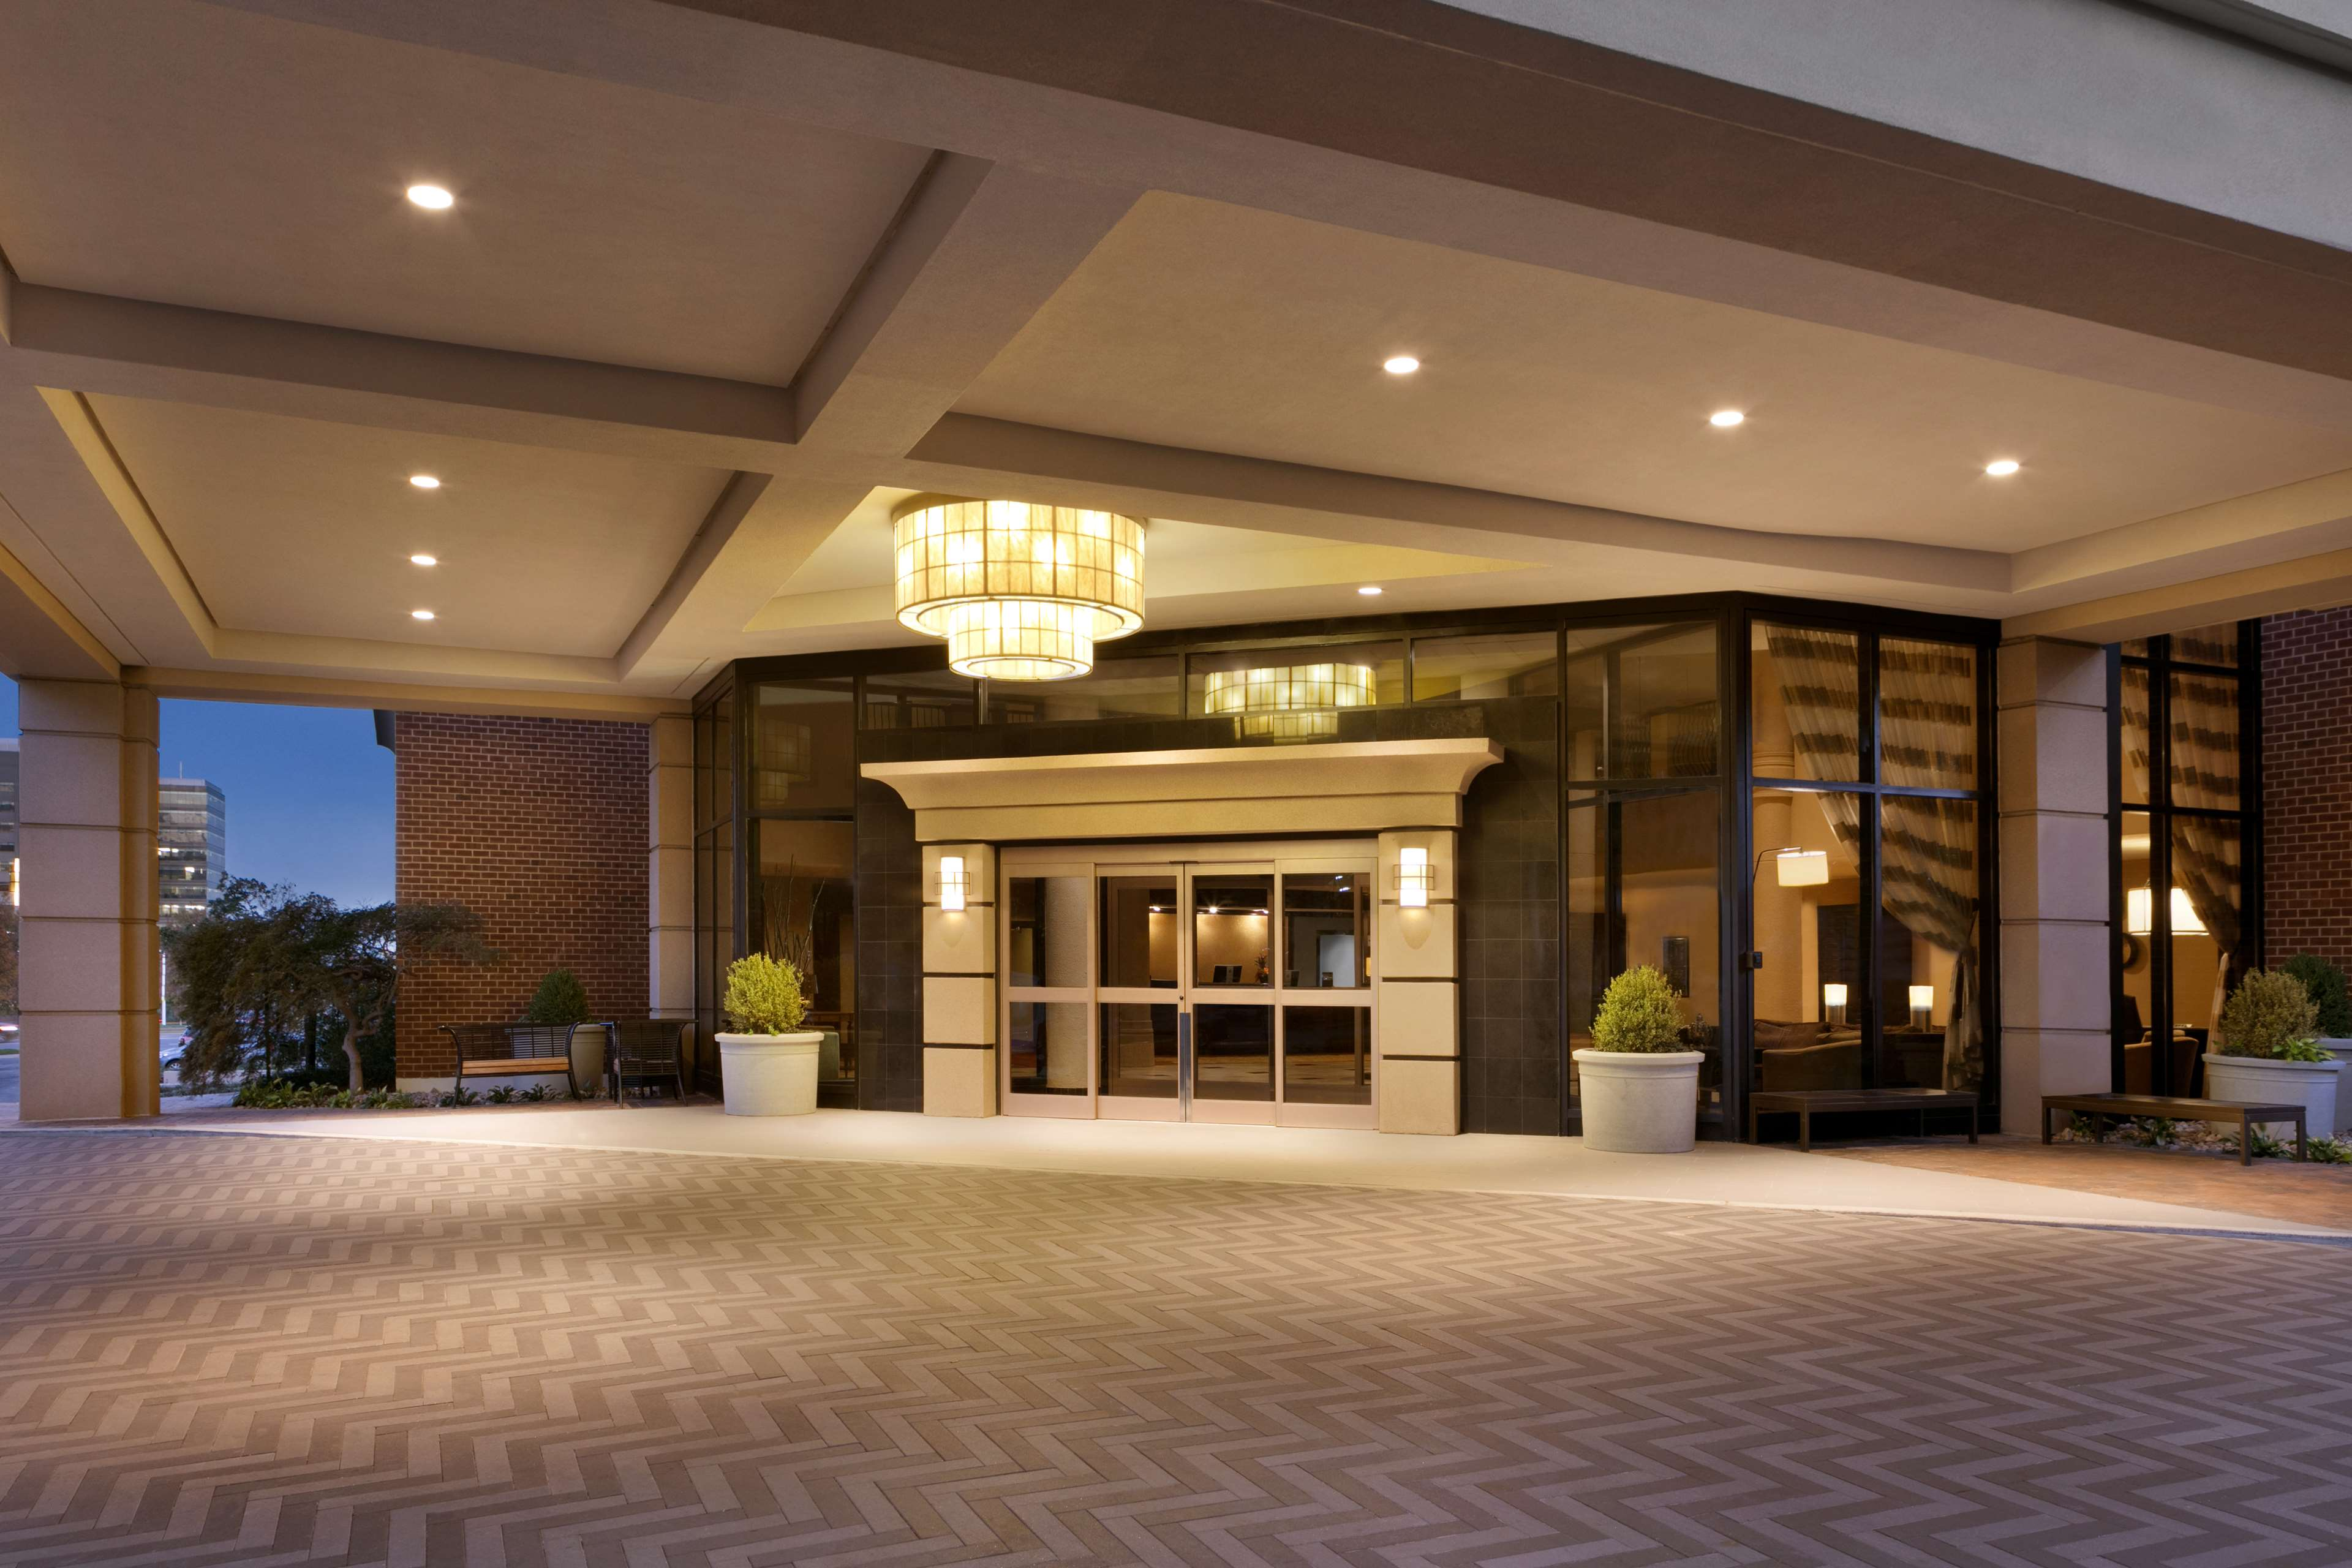 DoubleTree by Hilton McLean Tysons image 2